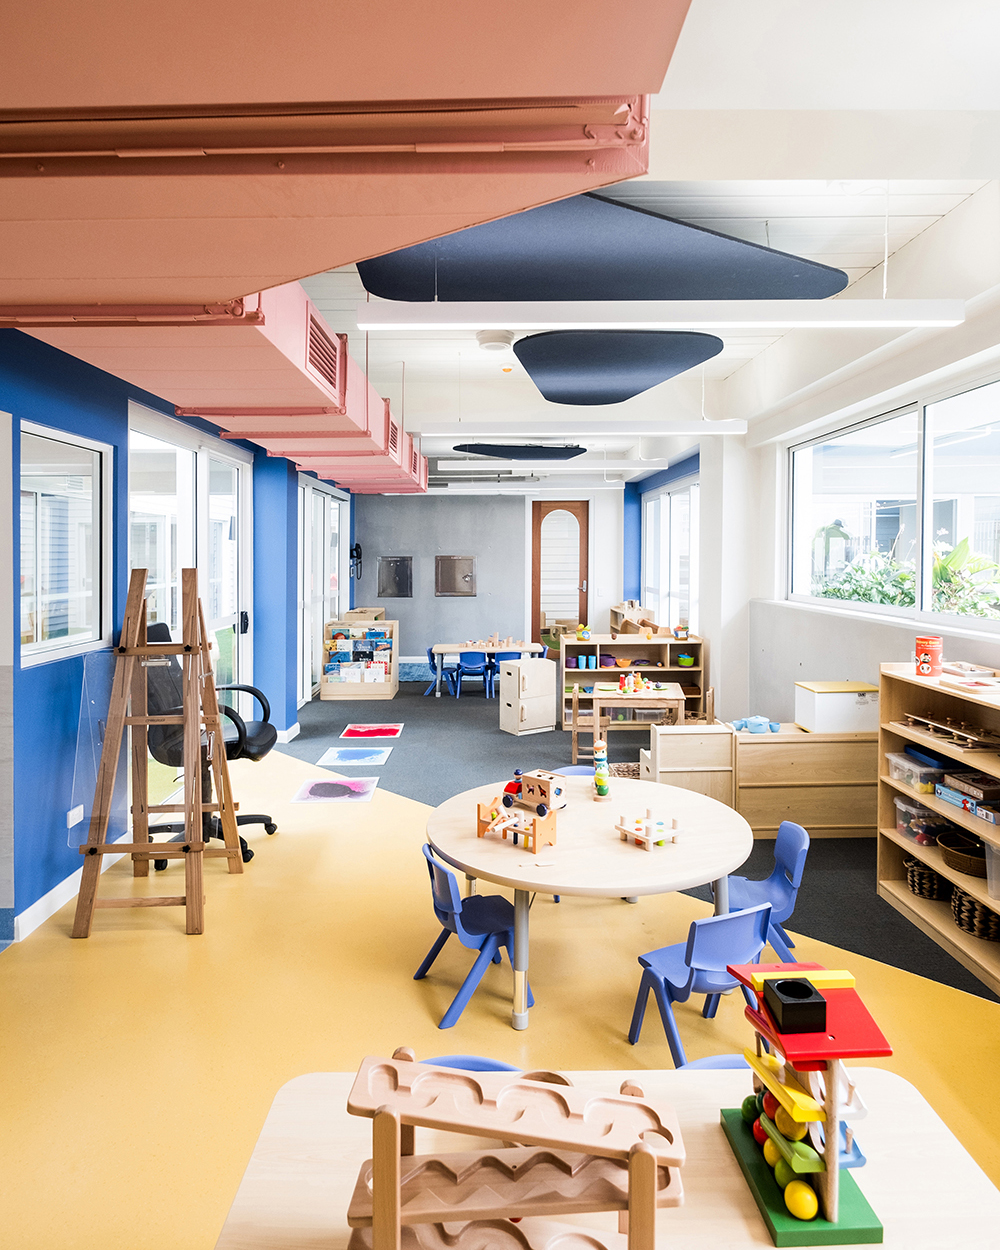 Dulux Colour Awards 2019 Commercial Interior: Workplace and Retail Winner Project _ Giraffe Learning Centre (NSW) by Supercontext Architecture Studio Photographer _ Adam Madigan and Bob Barrett